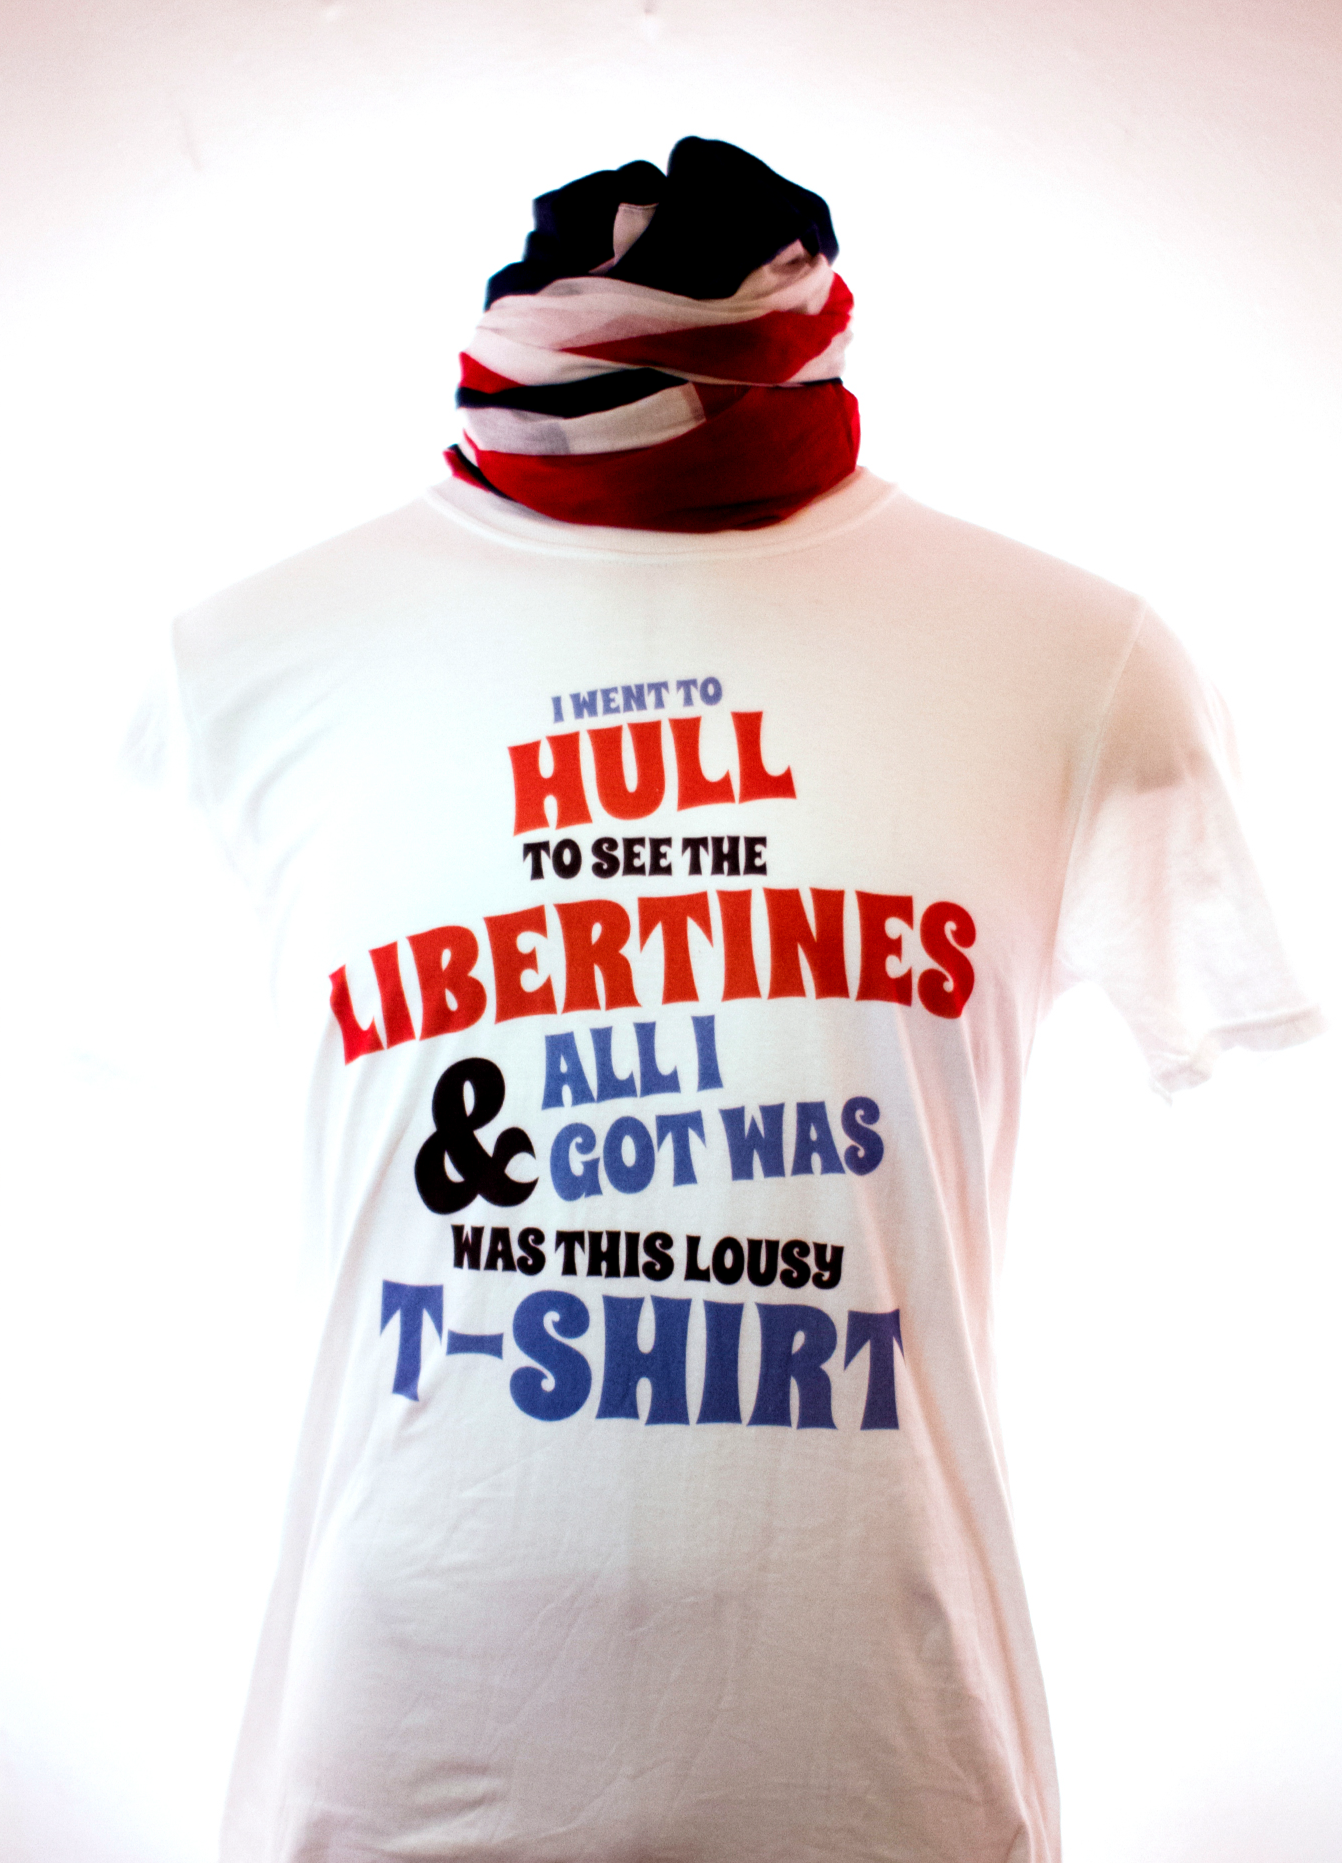 I Went to Hull T-Shirt (SALE) - The Libertines